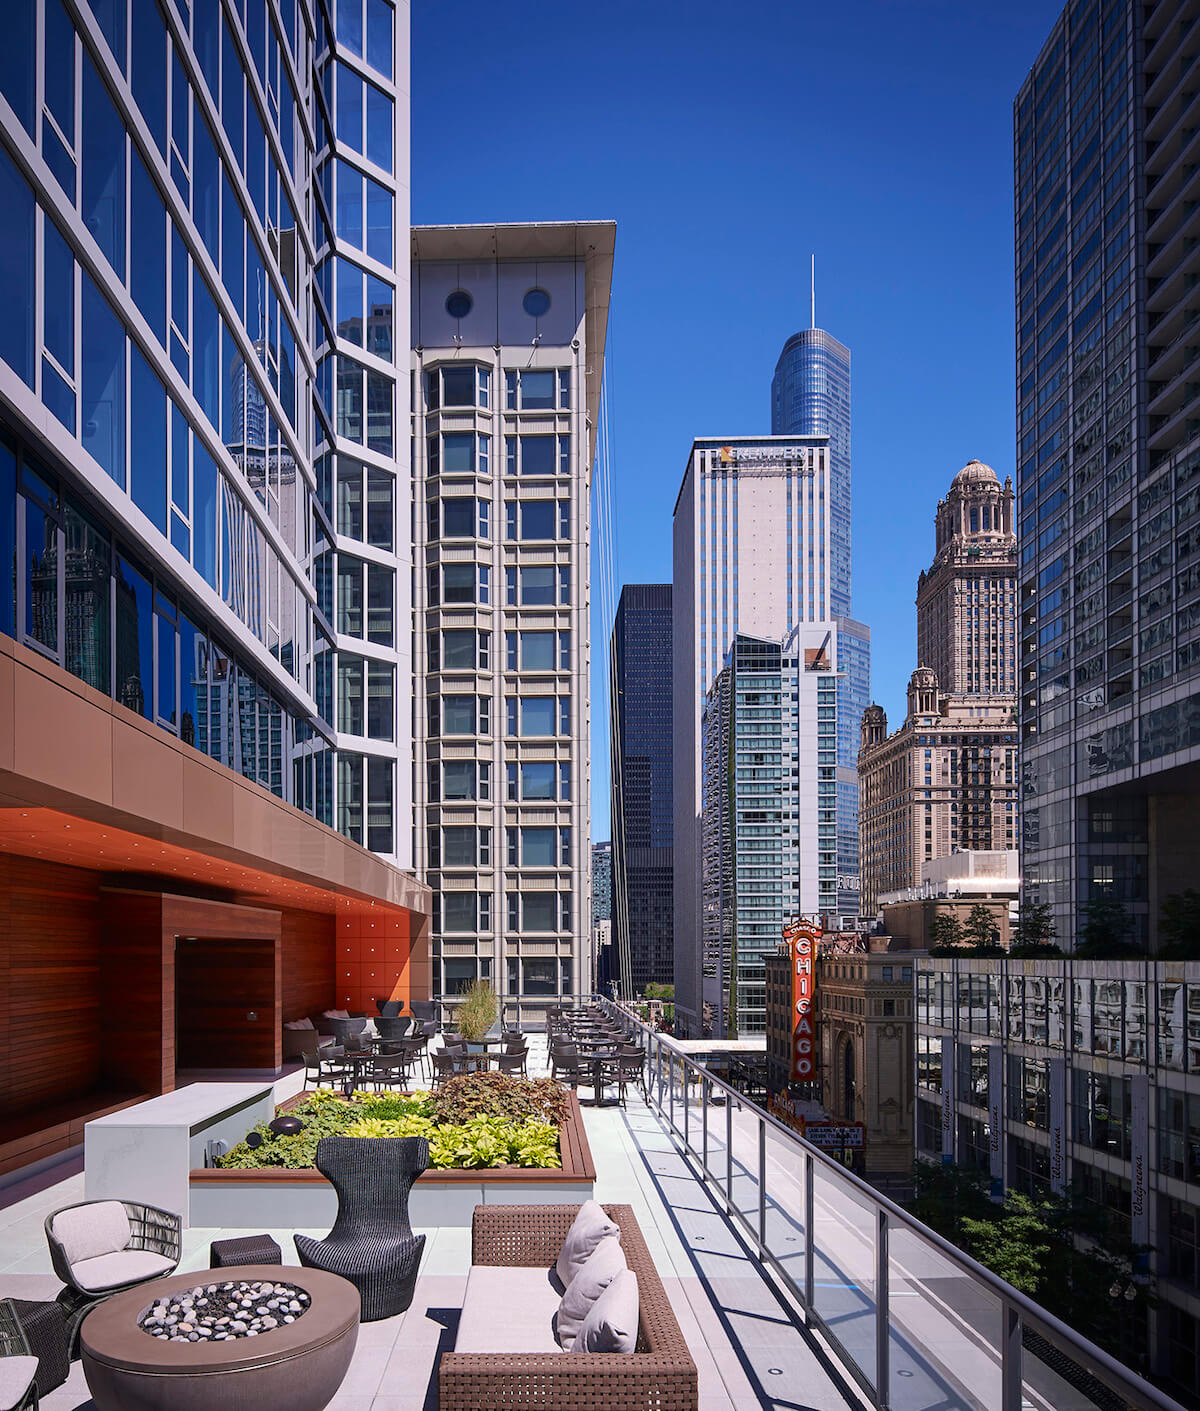 Studio Apartments For Rent Chicago: Chicago Luxury Apartments For Rent